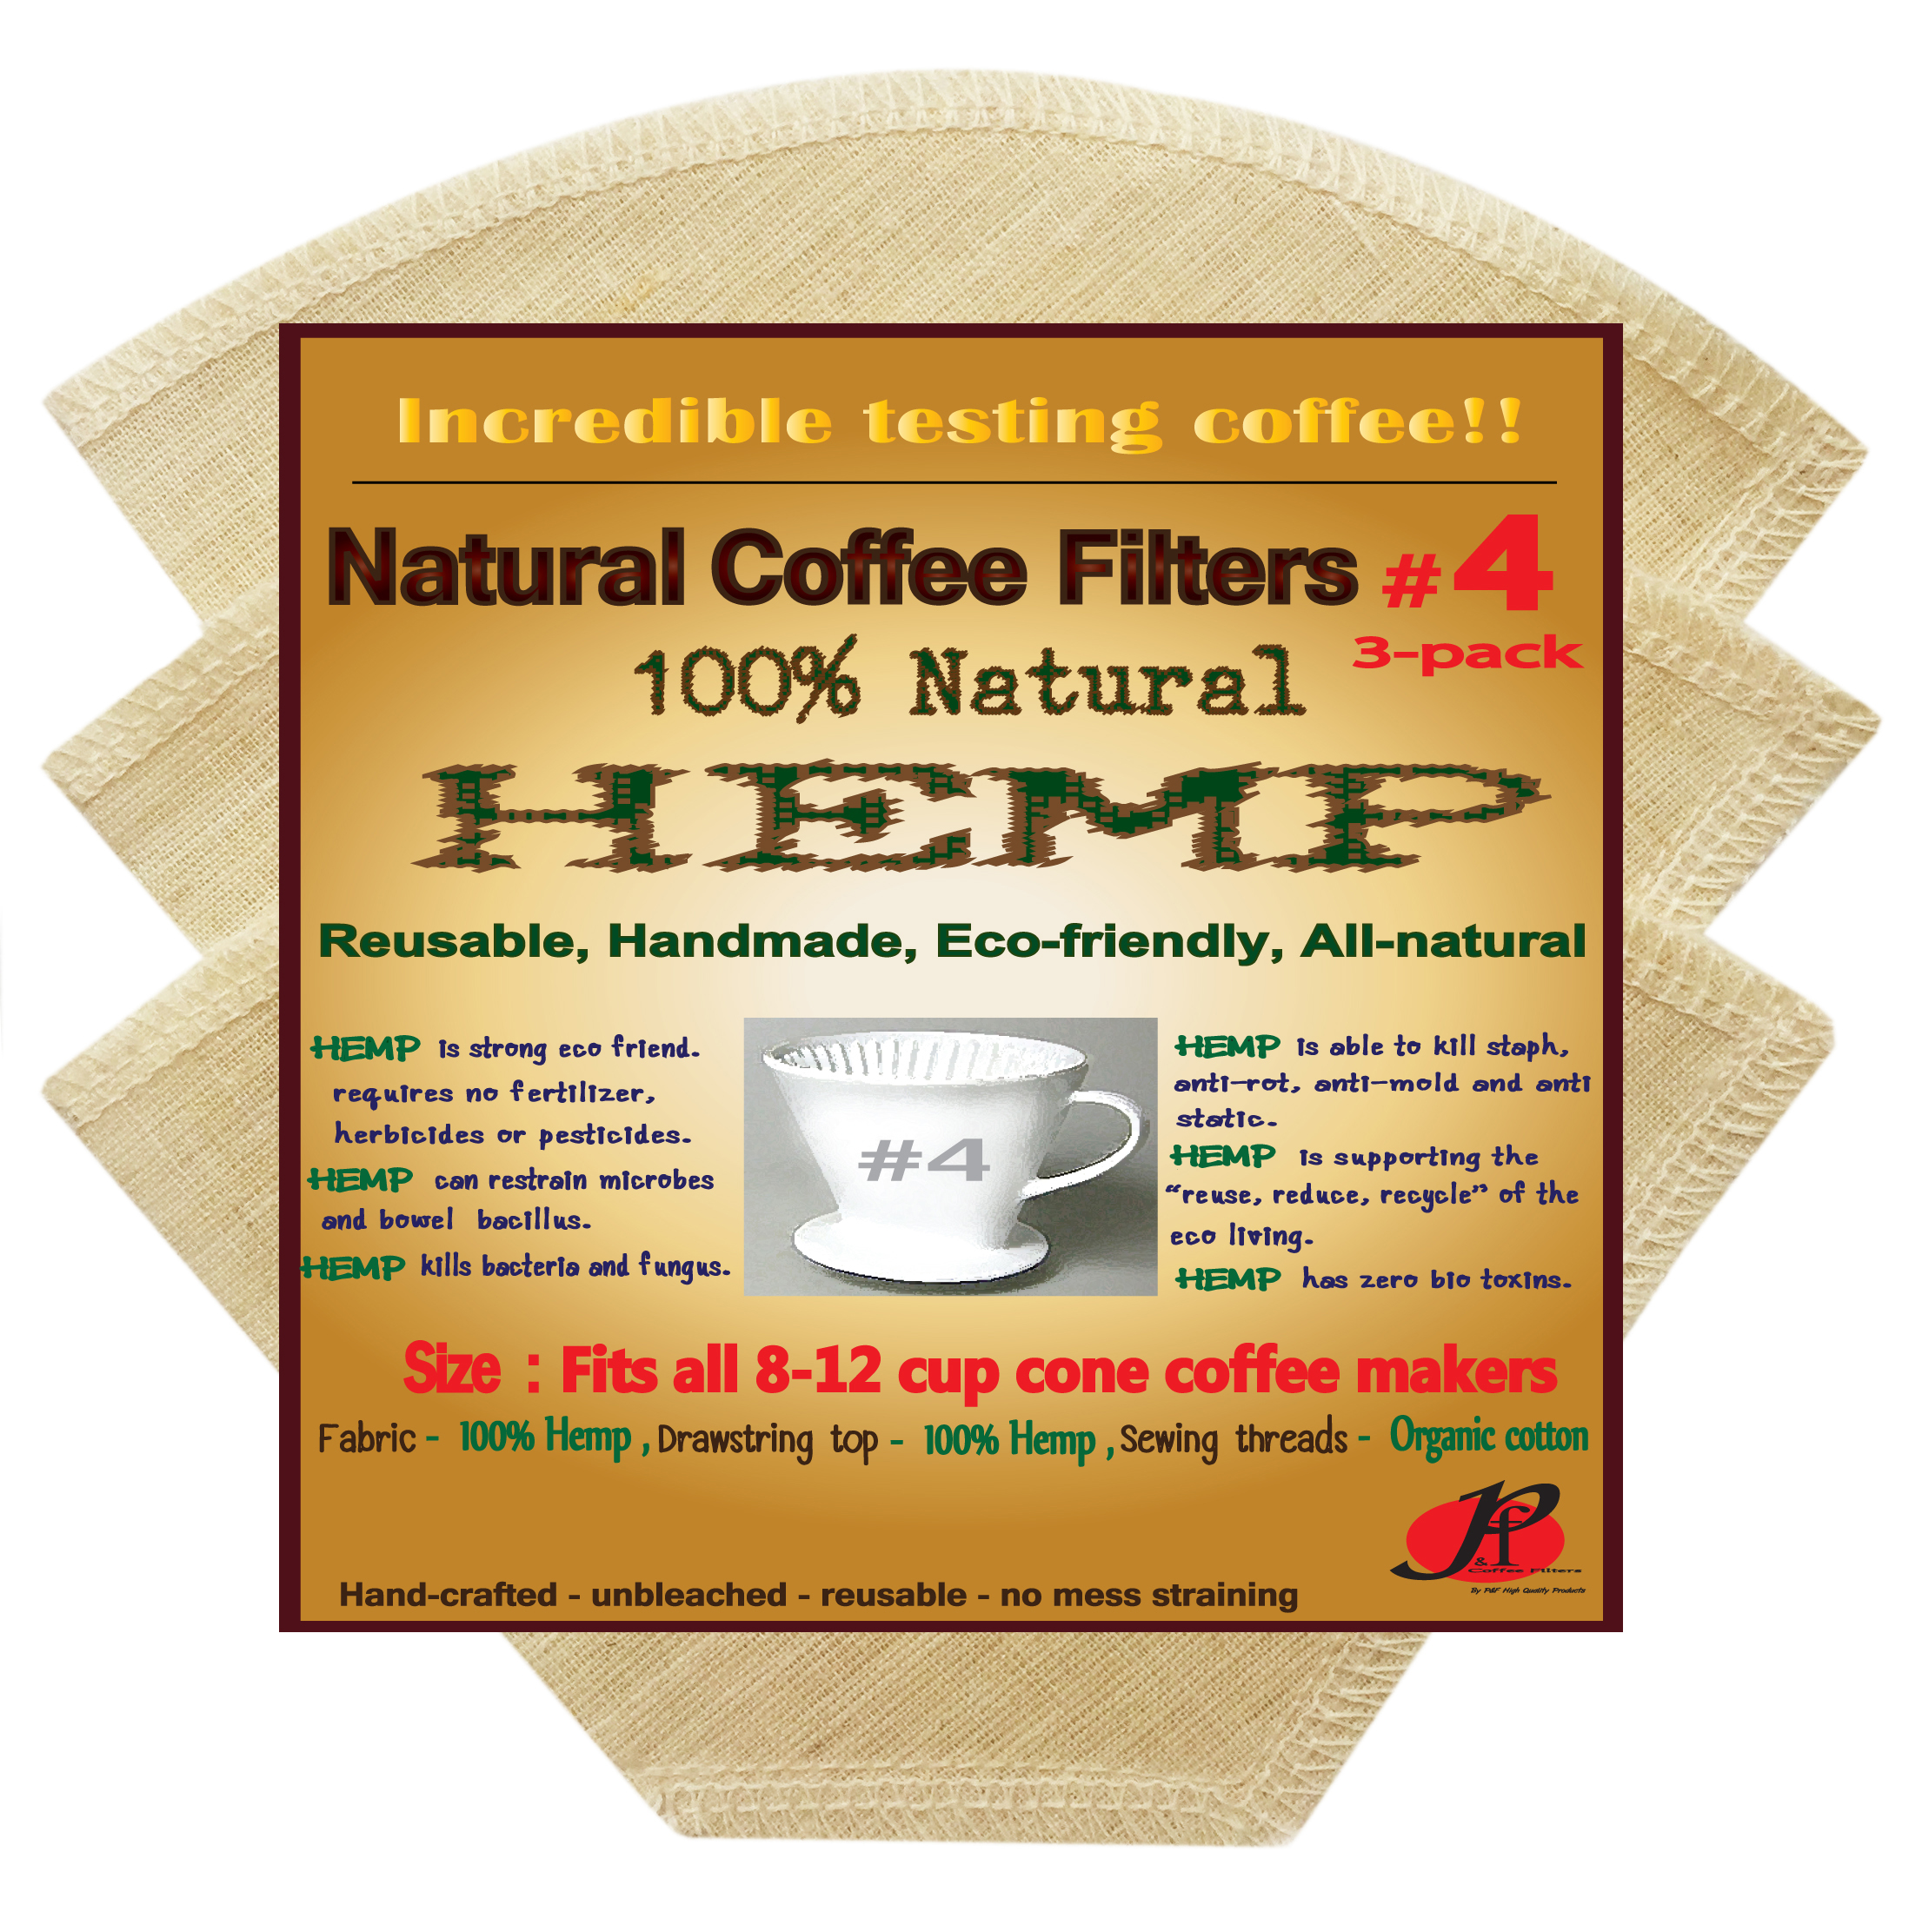 P&F(3 pack)Natural Reusable Cone Coffee Filters #4 Melitta Style, No Harmful Chemical, All Natural